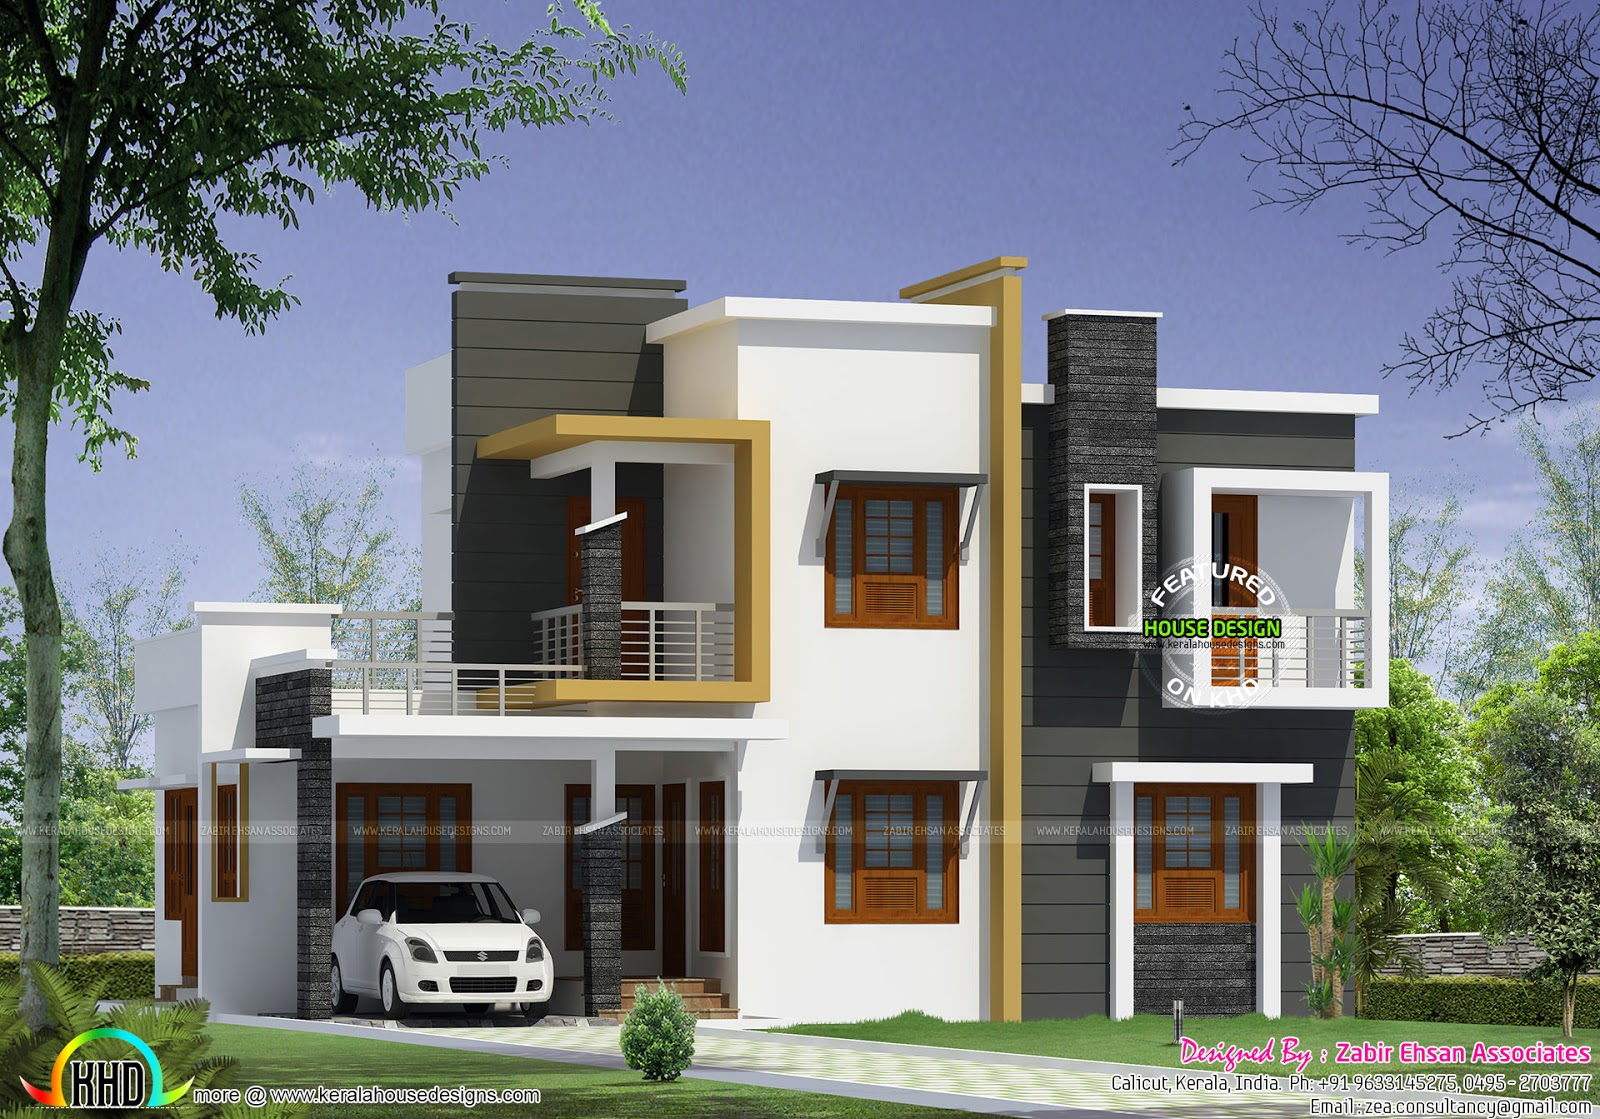 Box type modern house plan kerala home design and floor for New house design